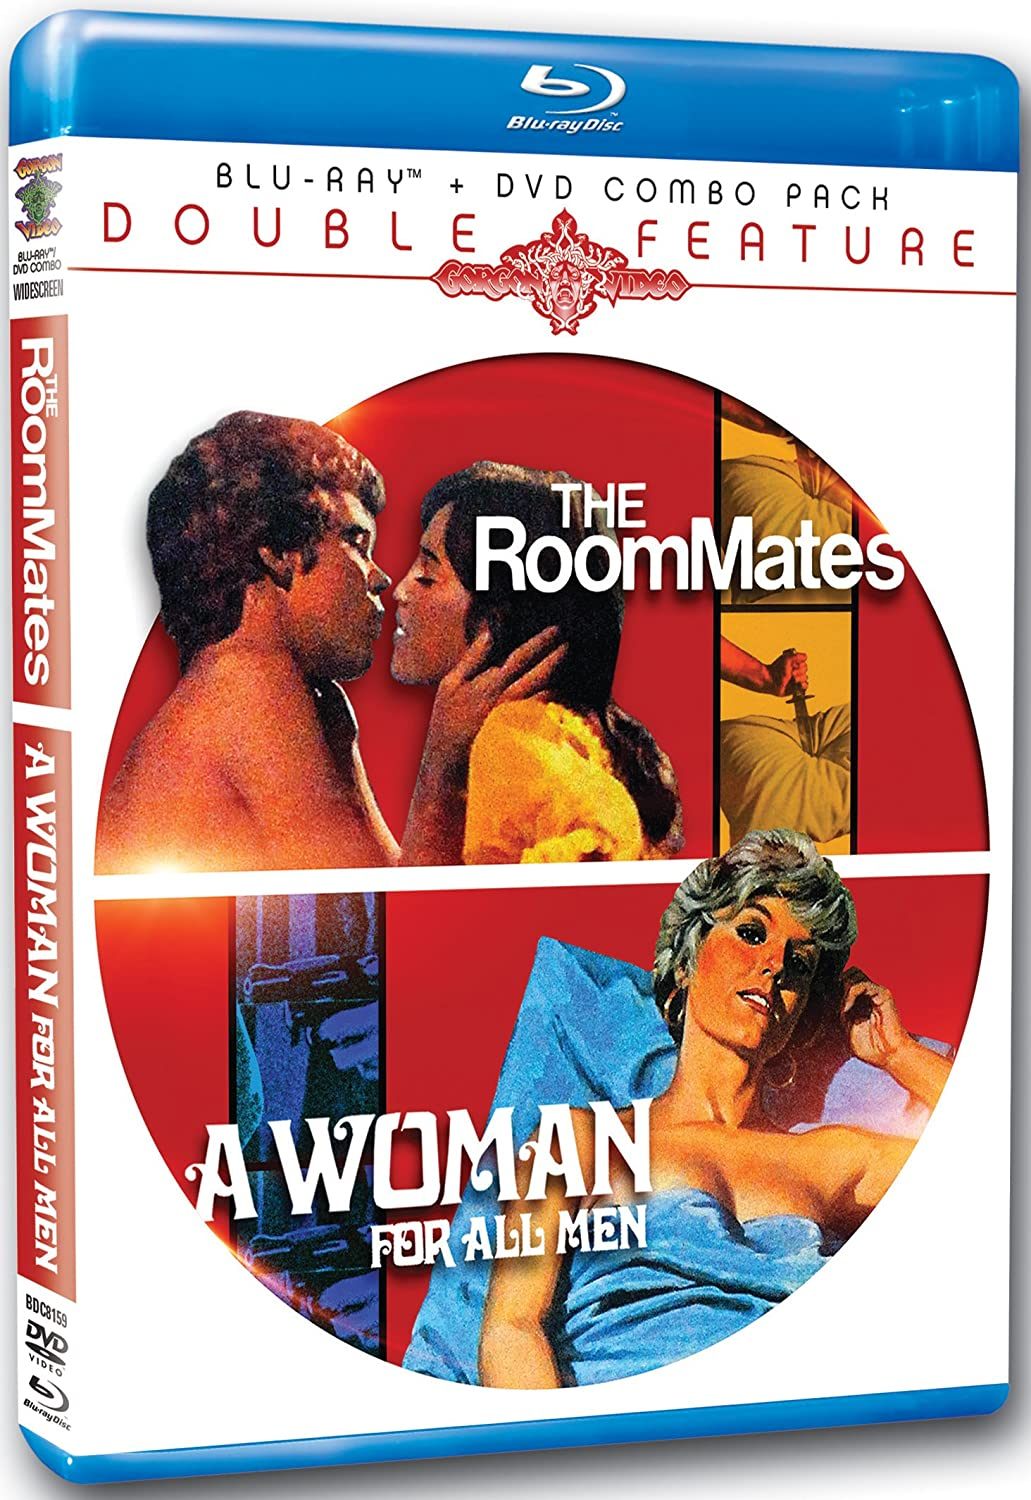 Blu-ray +DVD The Roommates A Woman For All Men